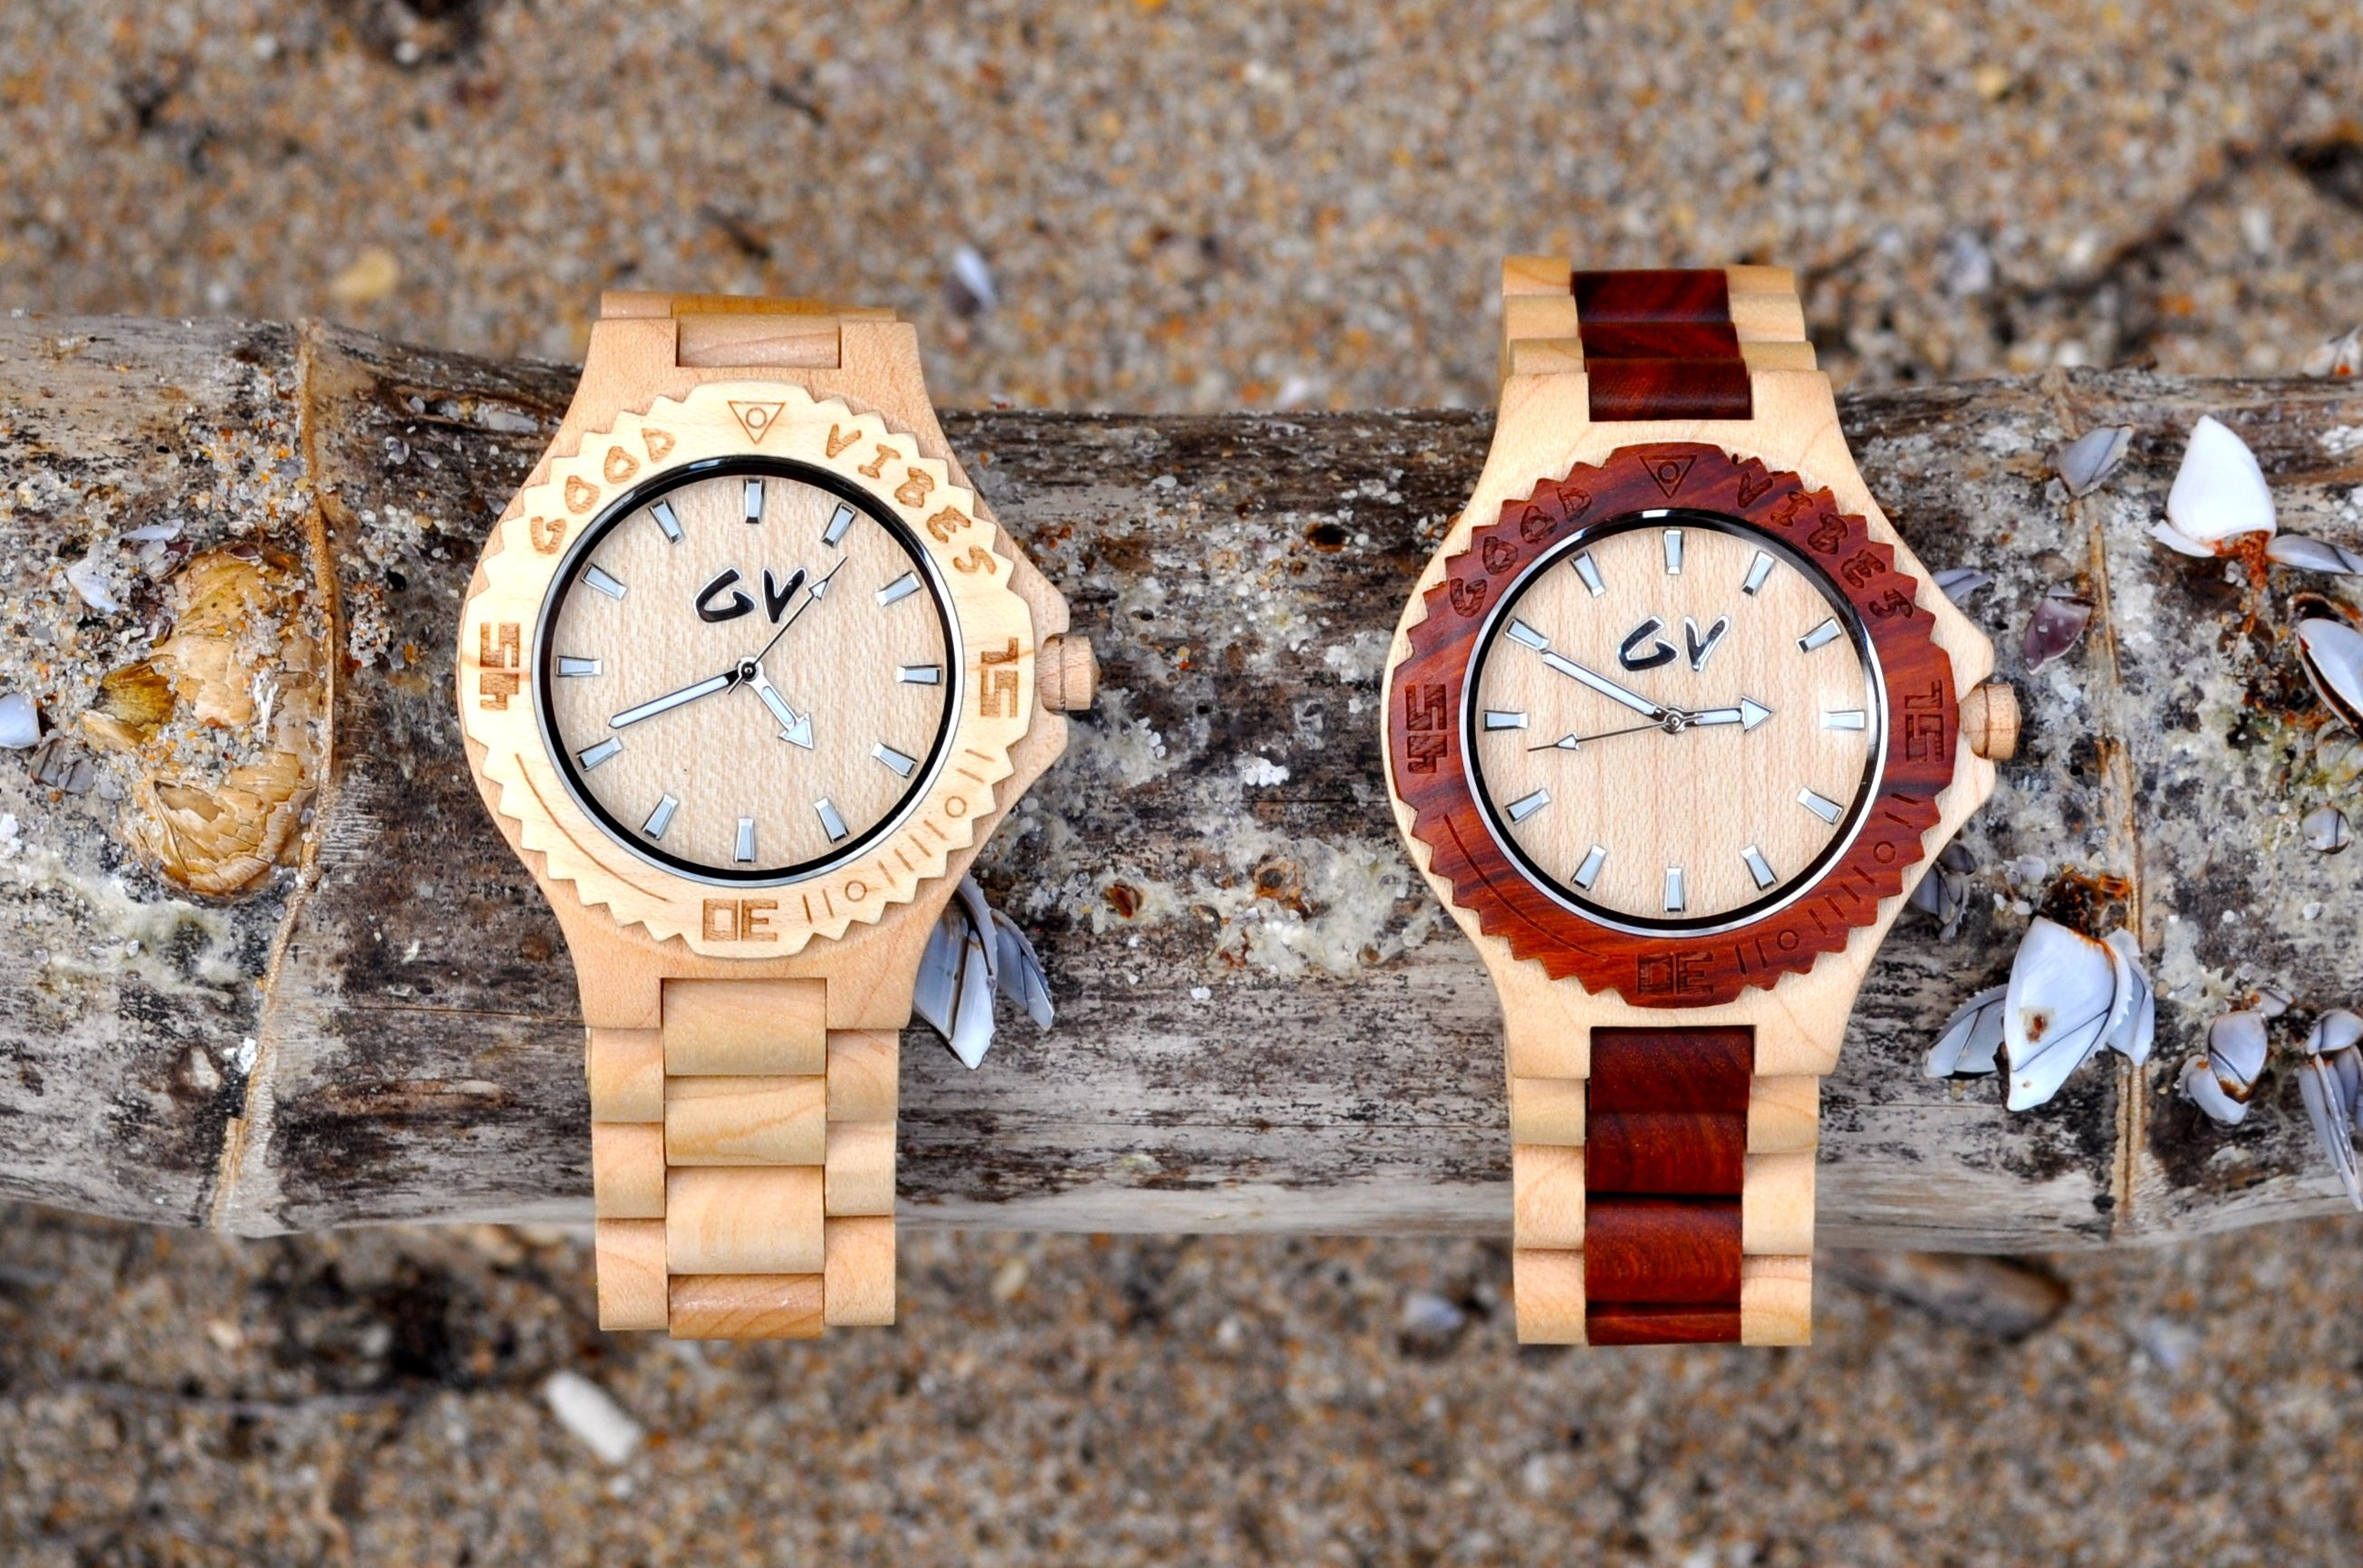 Good Vibes Wood Watches Fall 2013 collection on Bamboo Maple Wood and Red Sandalwood with Pure Maple